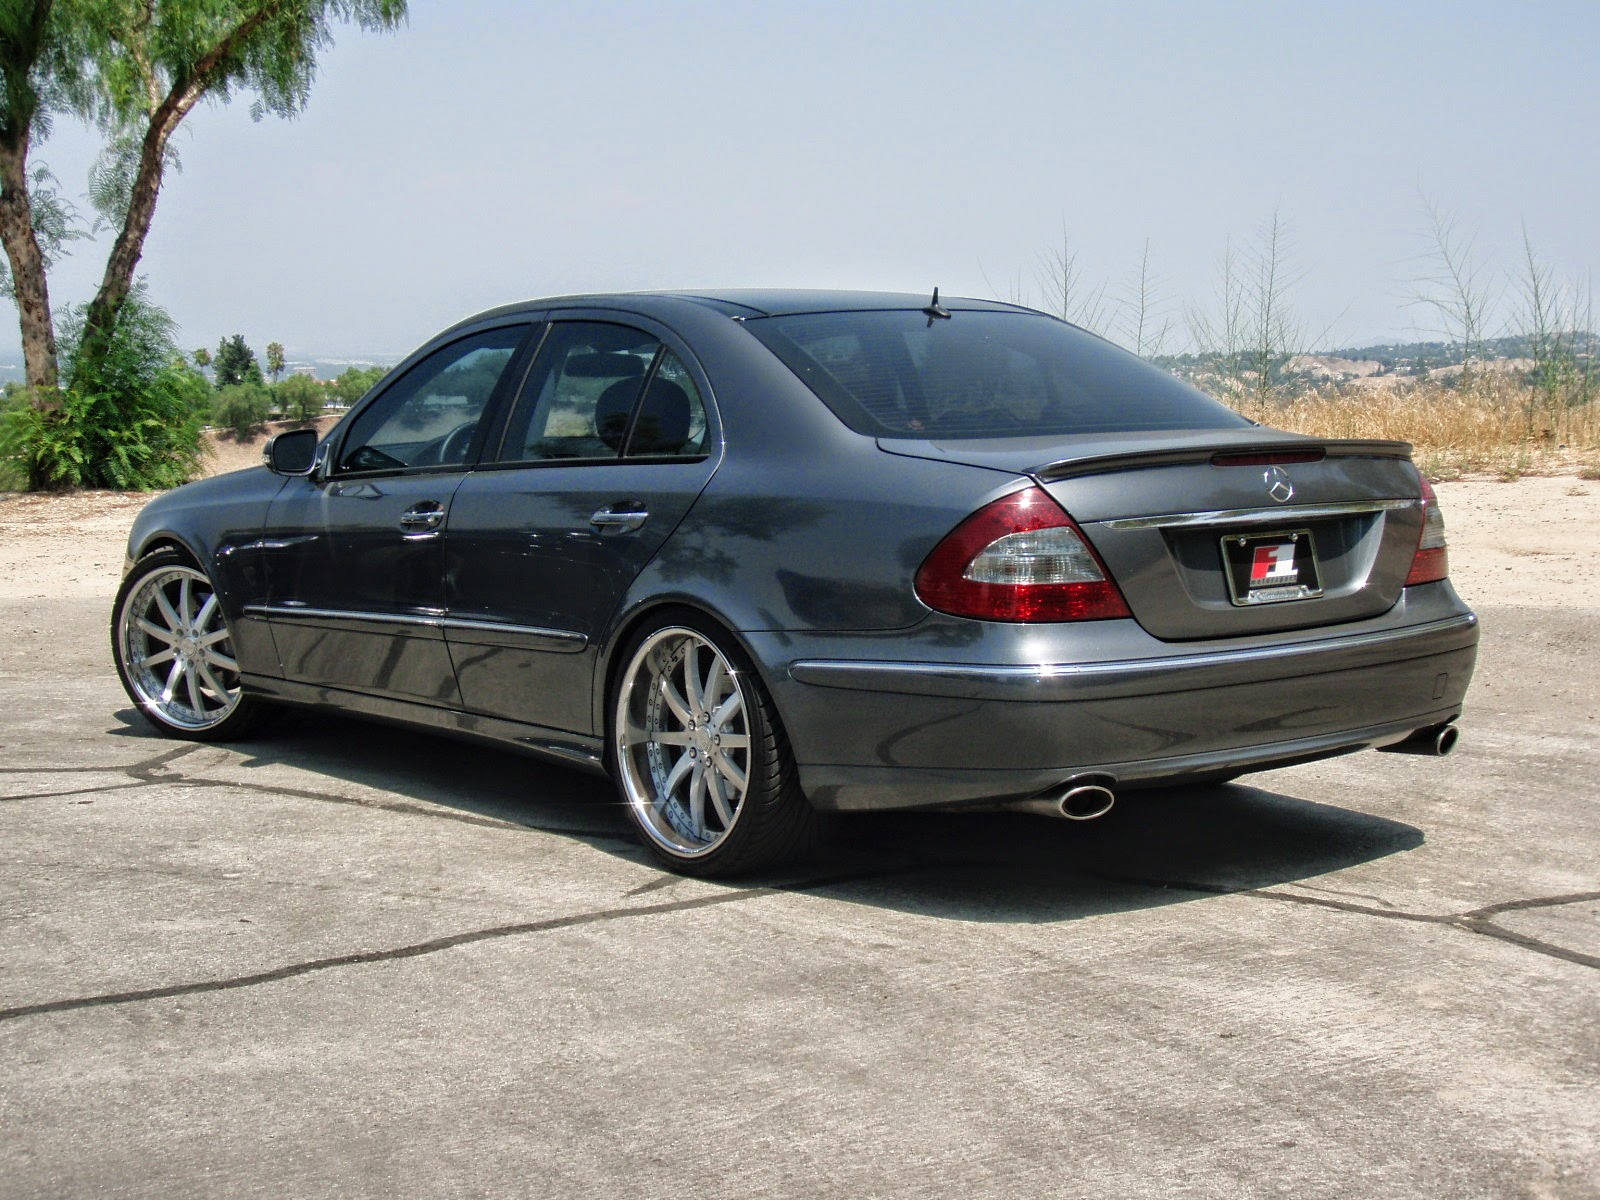 Mercedes benz w211 e350 4matic tuning benztuning for Mercedes benz w